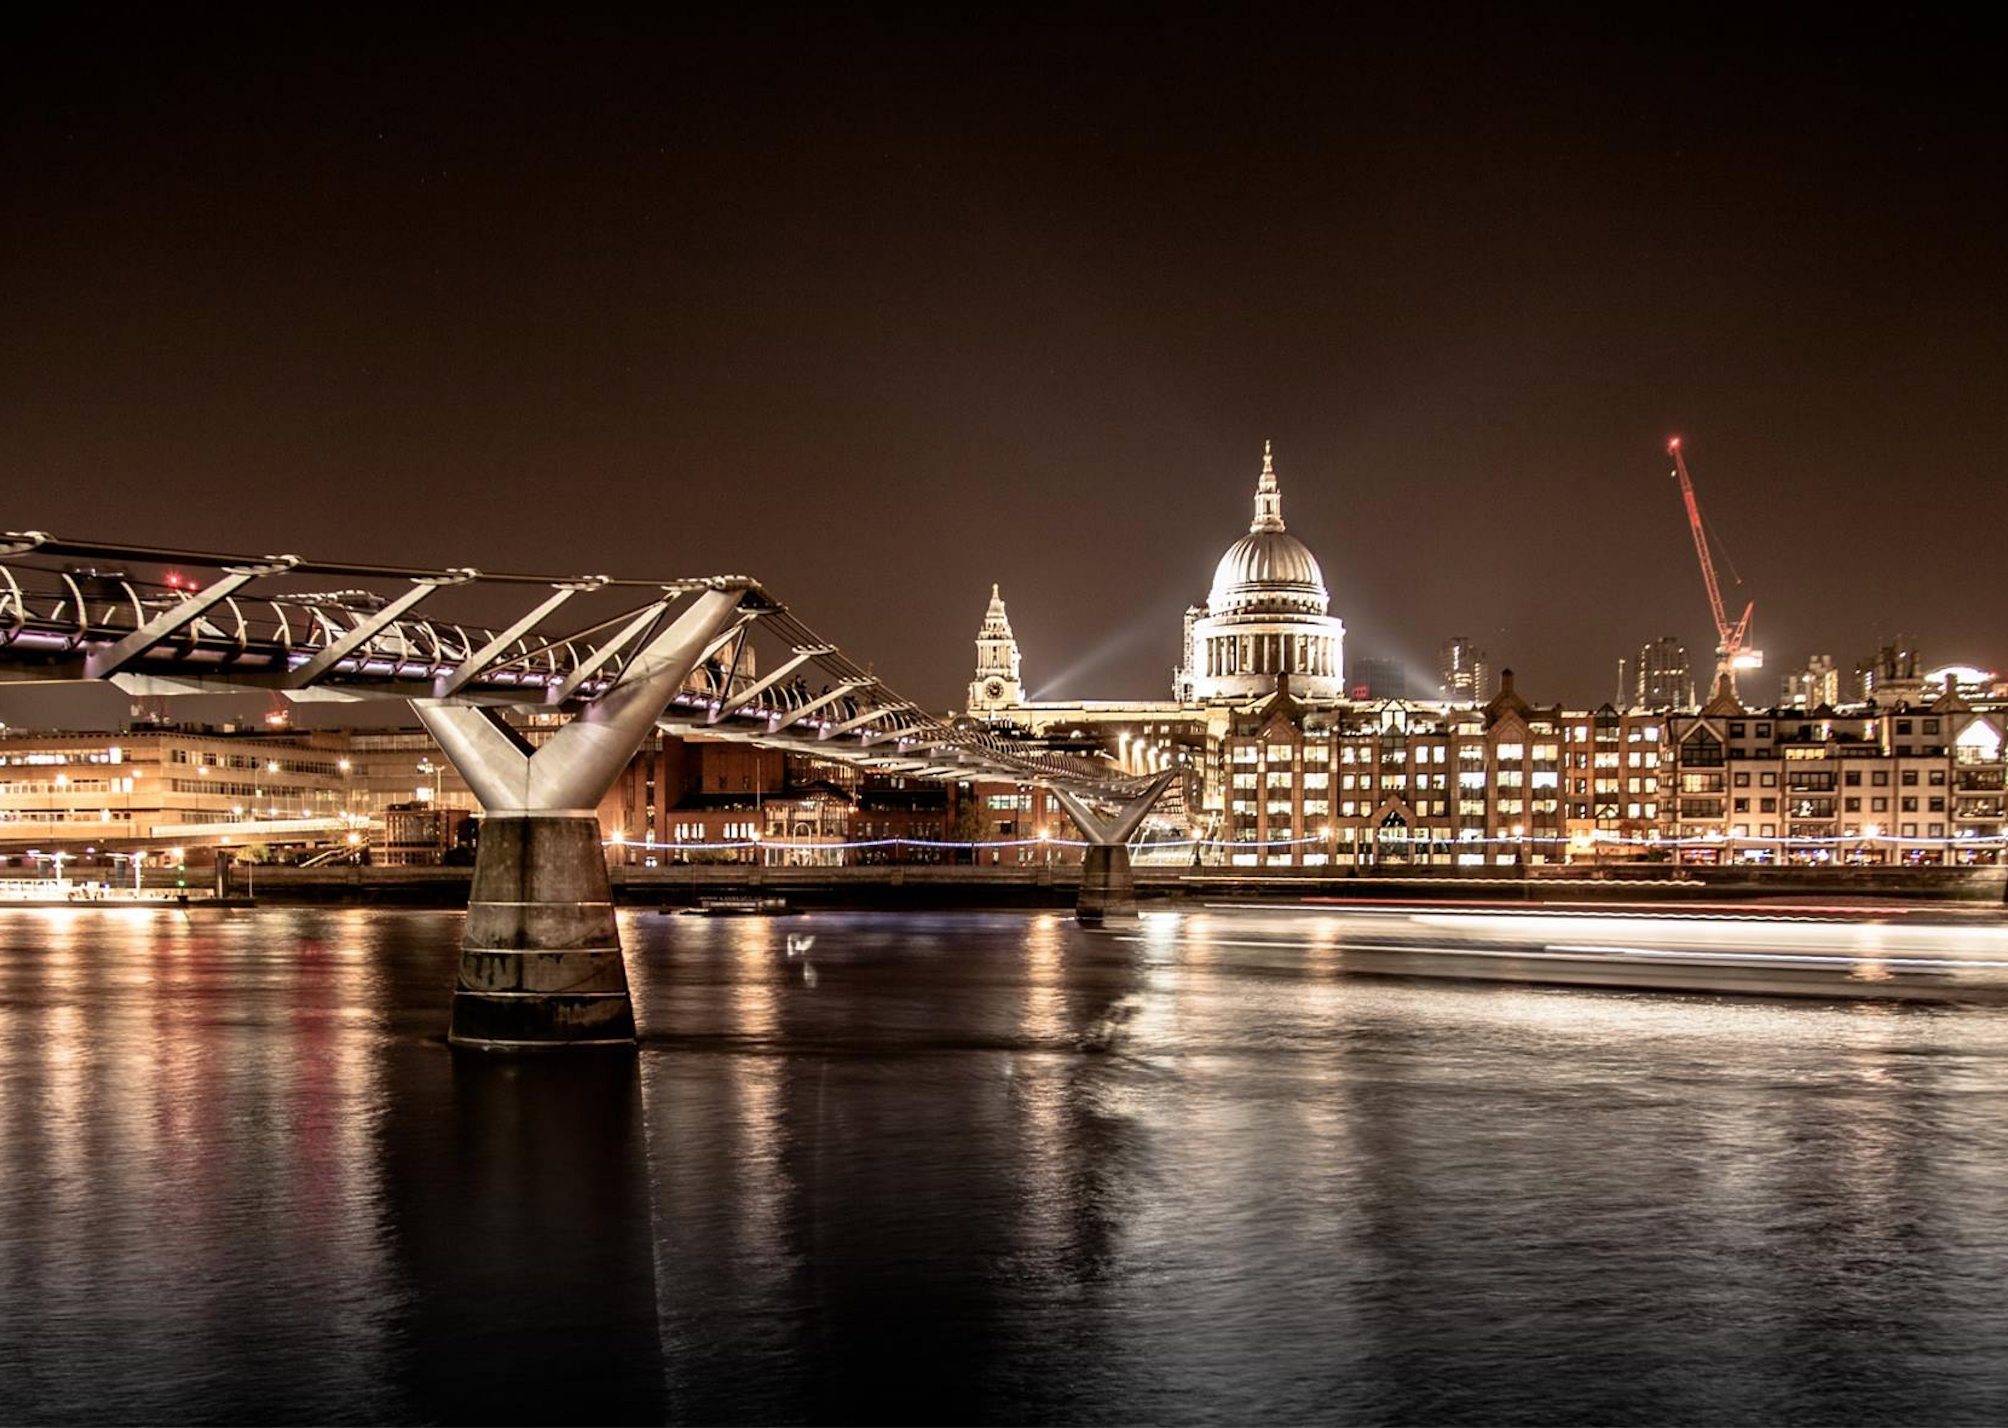 About - Riverlight is a London based network with a global reach, connecting advertisers and consumers worldwide.